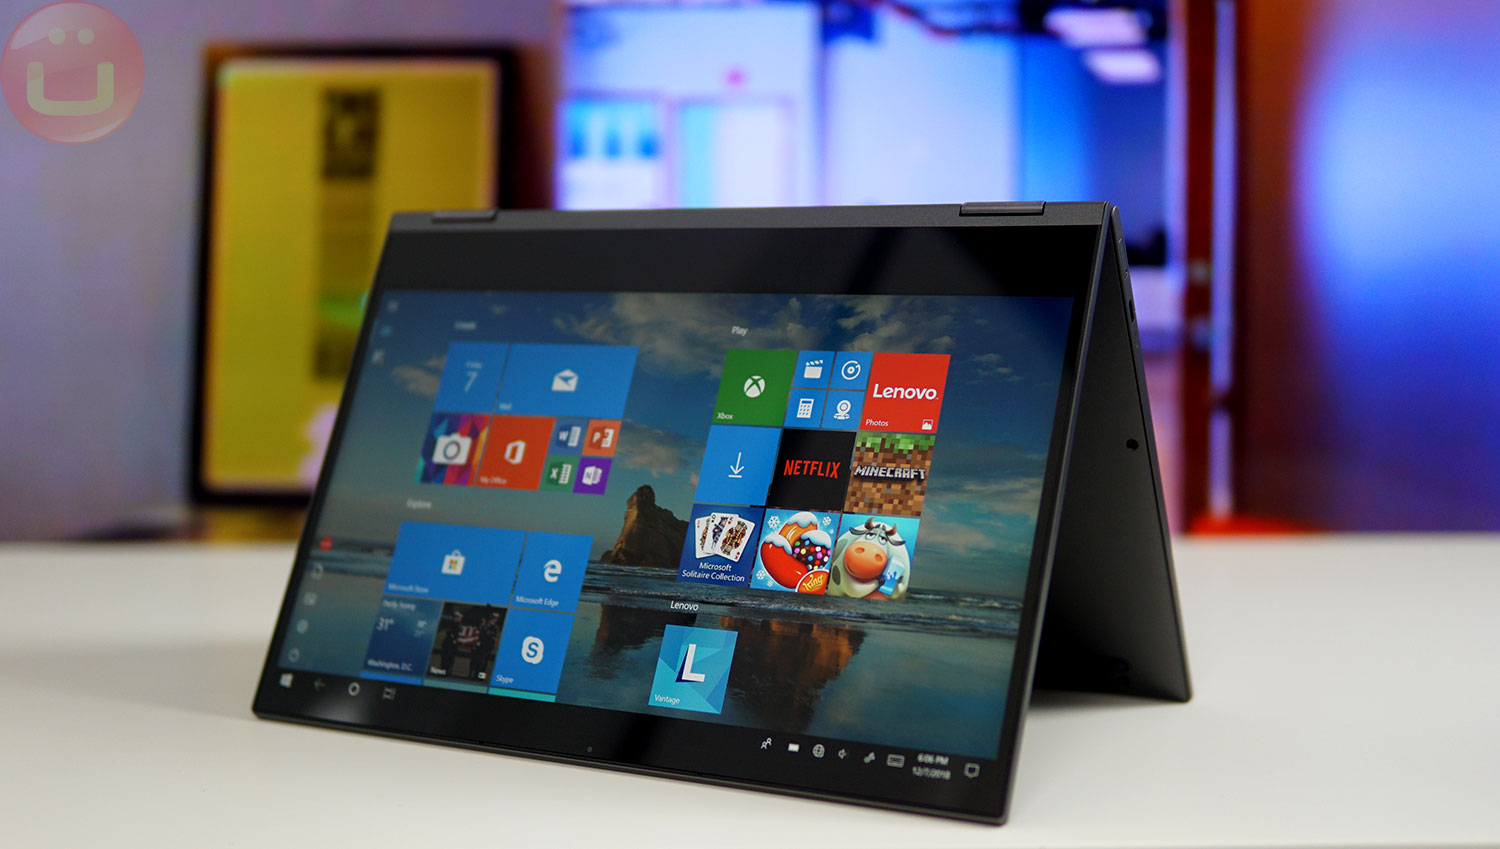 Lenovo Yoga C630 WoS Review: Long battery Life and 4G LTE | Ubergizmo